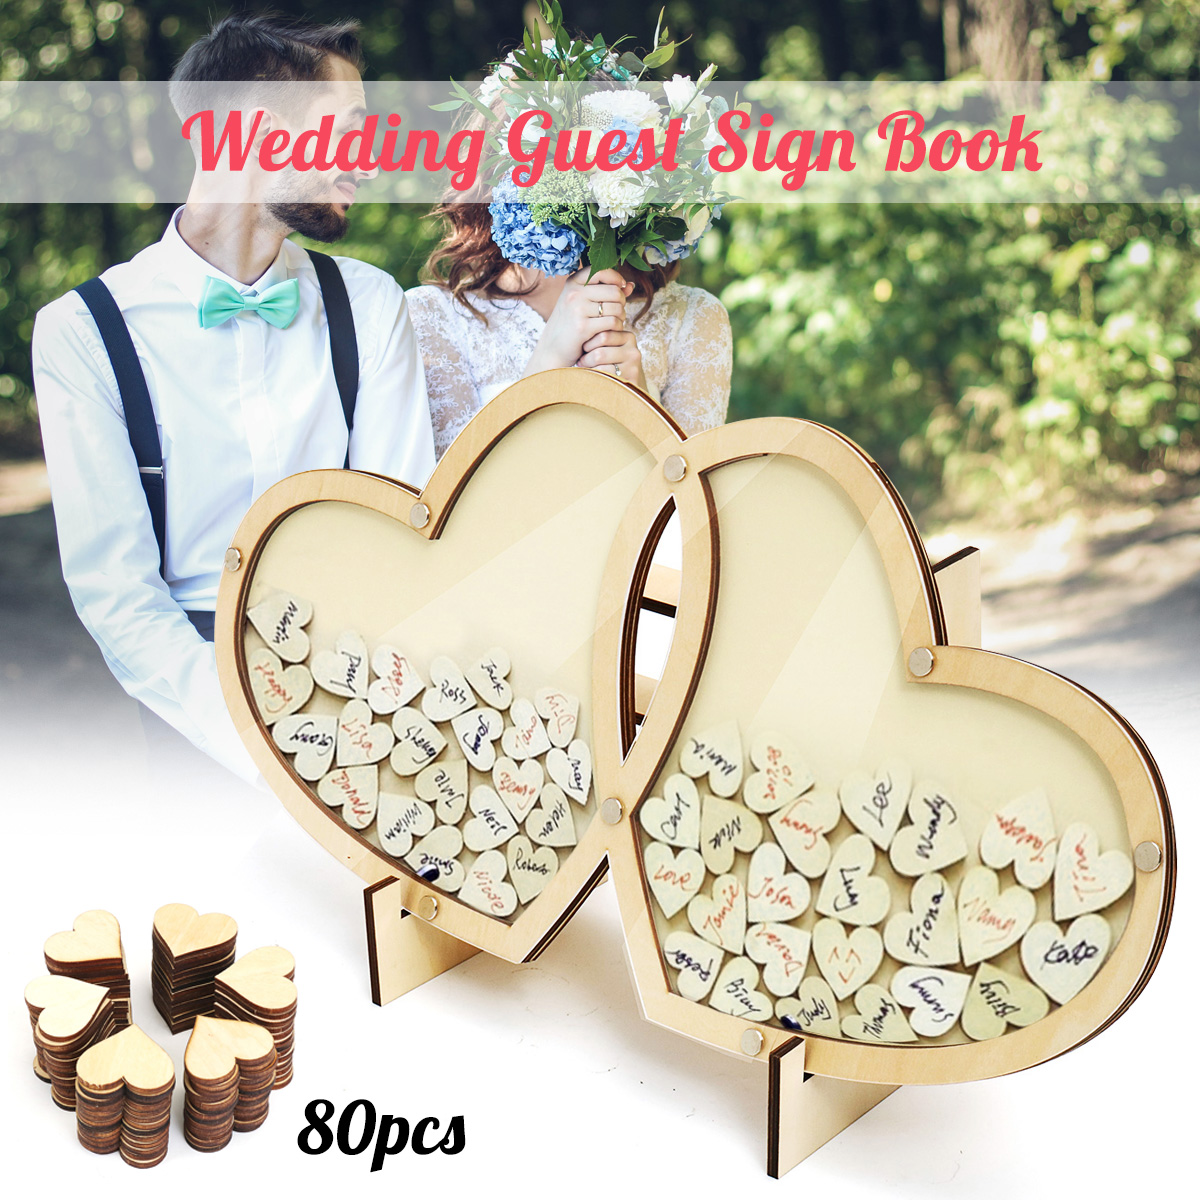 Personalized Hearts Wedding Guest Book Visit Signature Sign Book 3D Wooden Double Heart Pendant Drop Ornaments Party Decoration